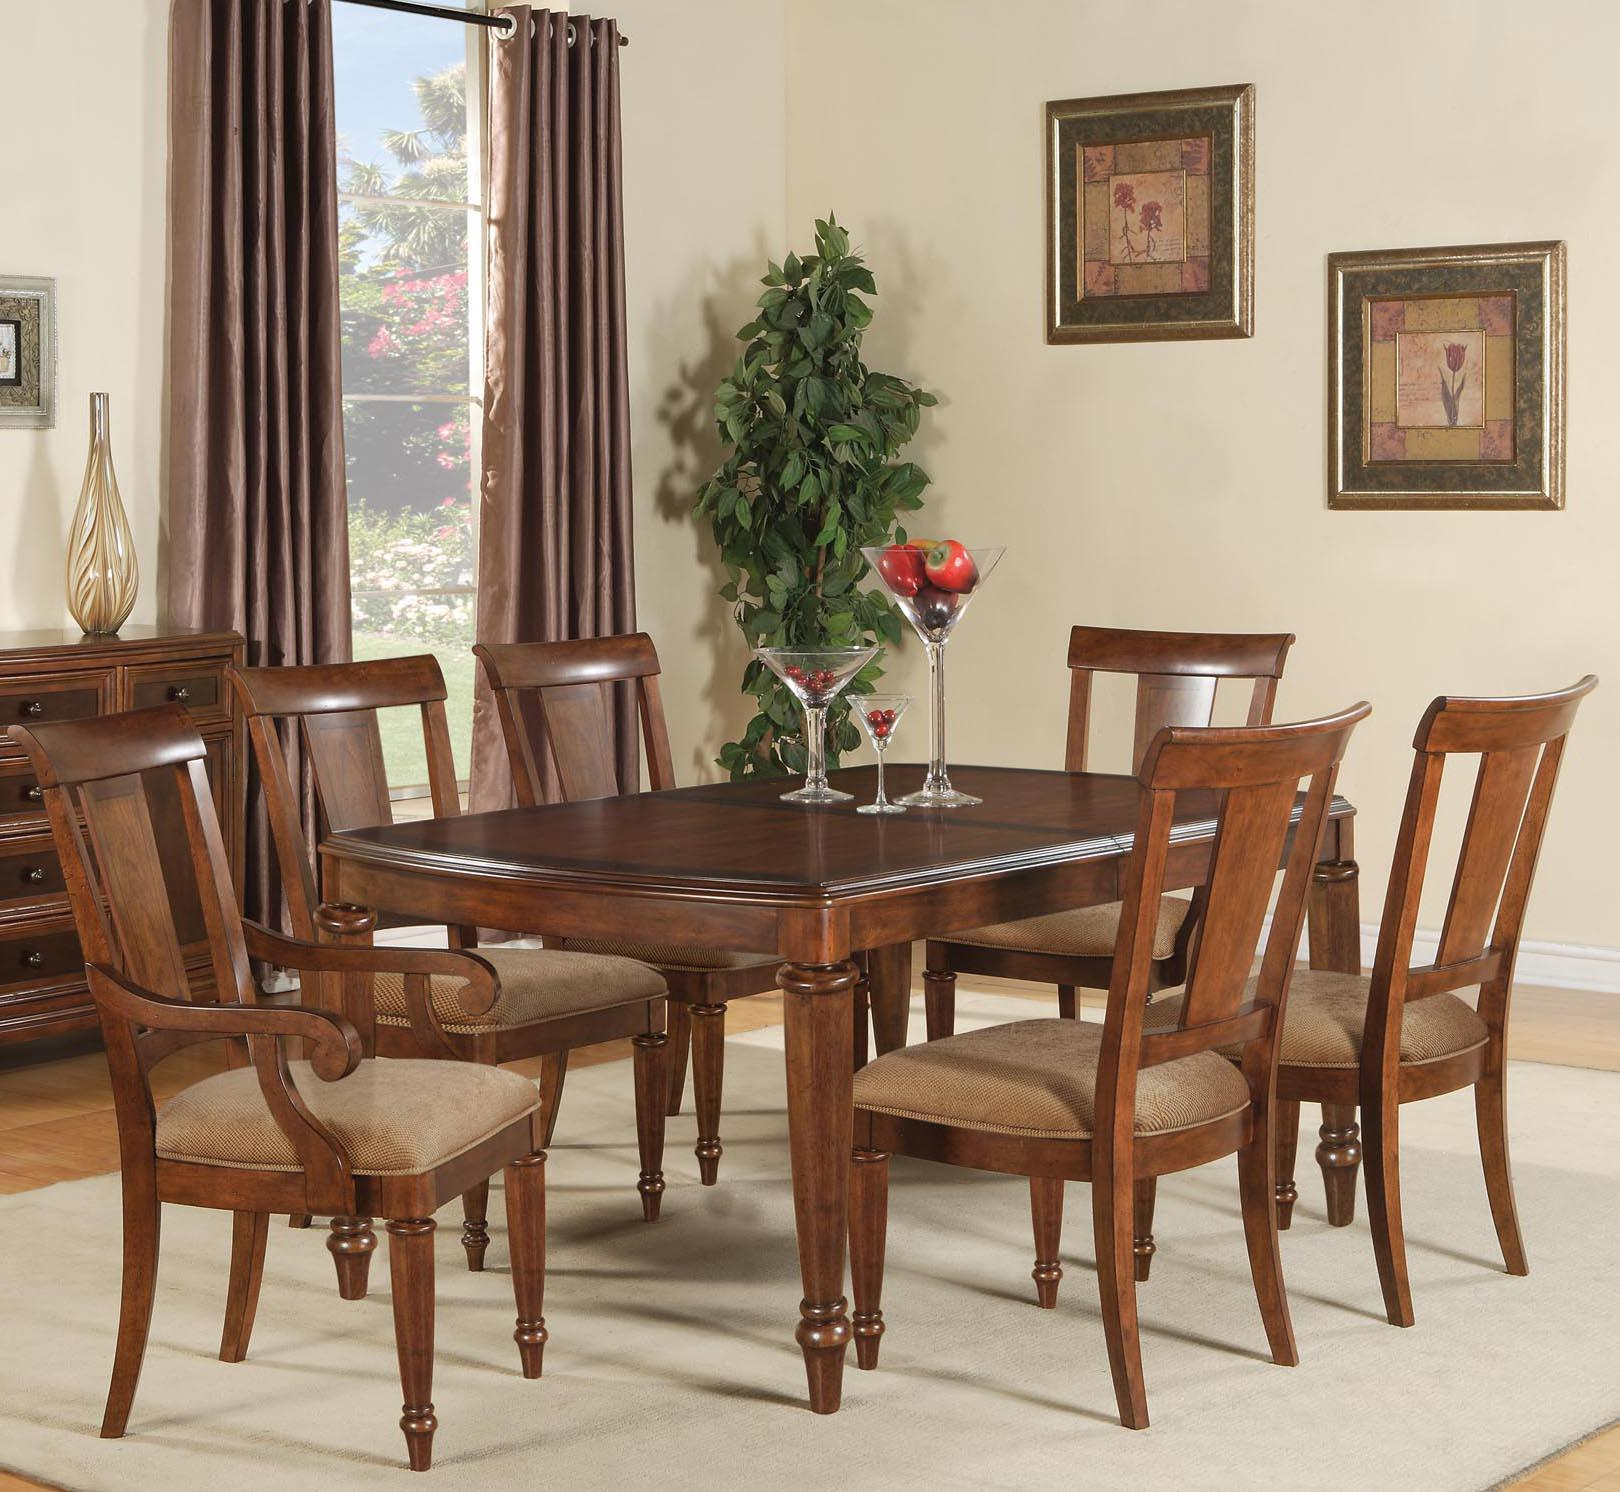 Brendon 7 Piece Dining Table And Chairs Set By Flexsteel Wynwood Collection